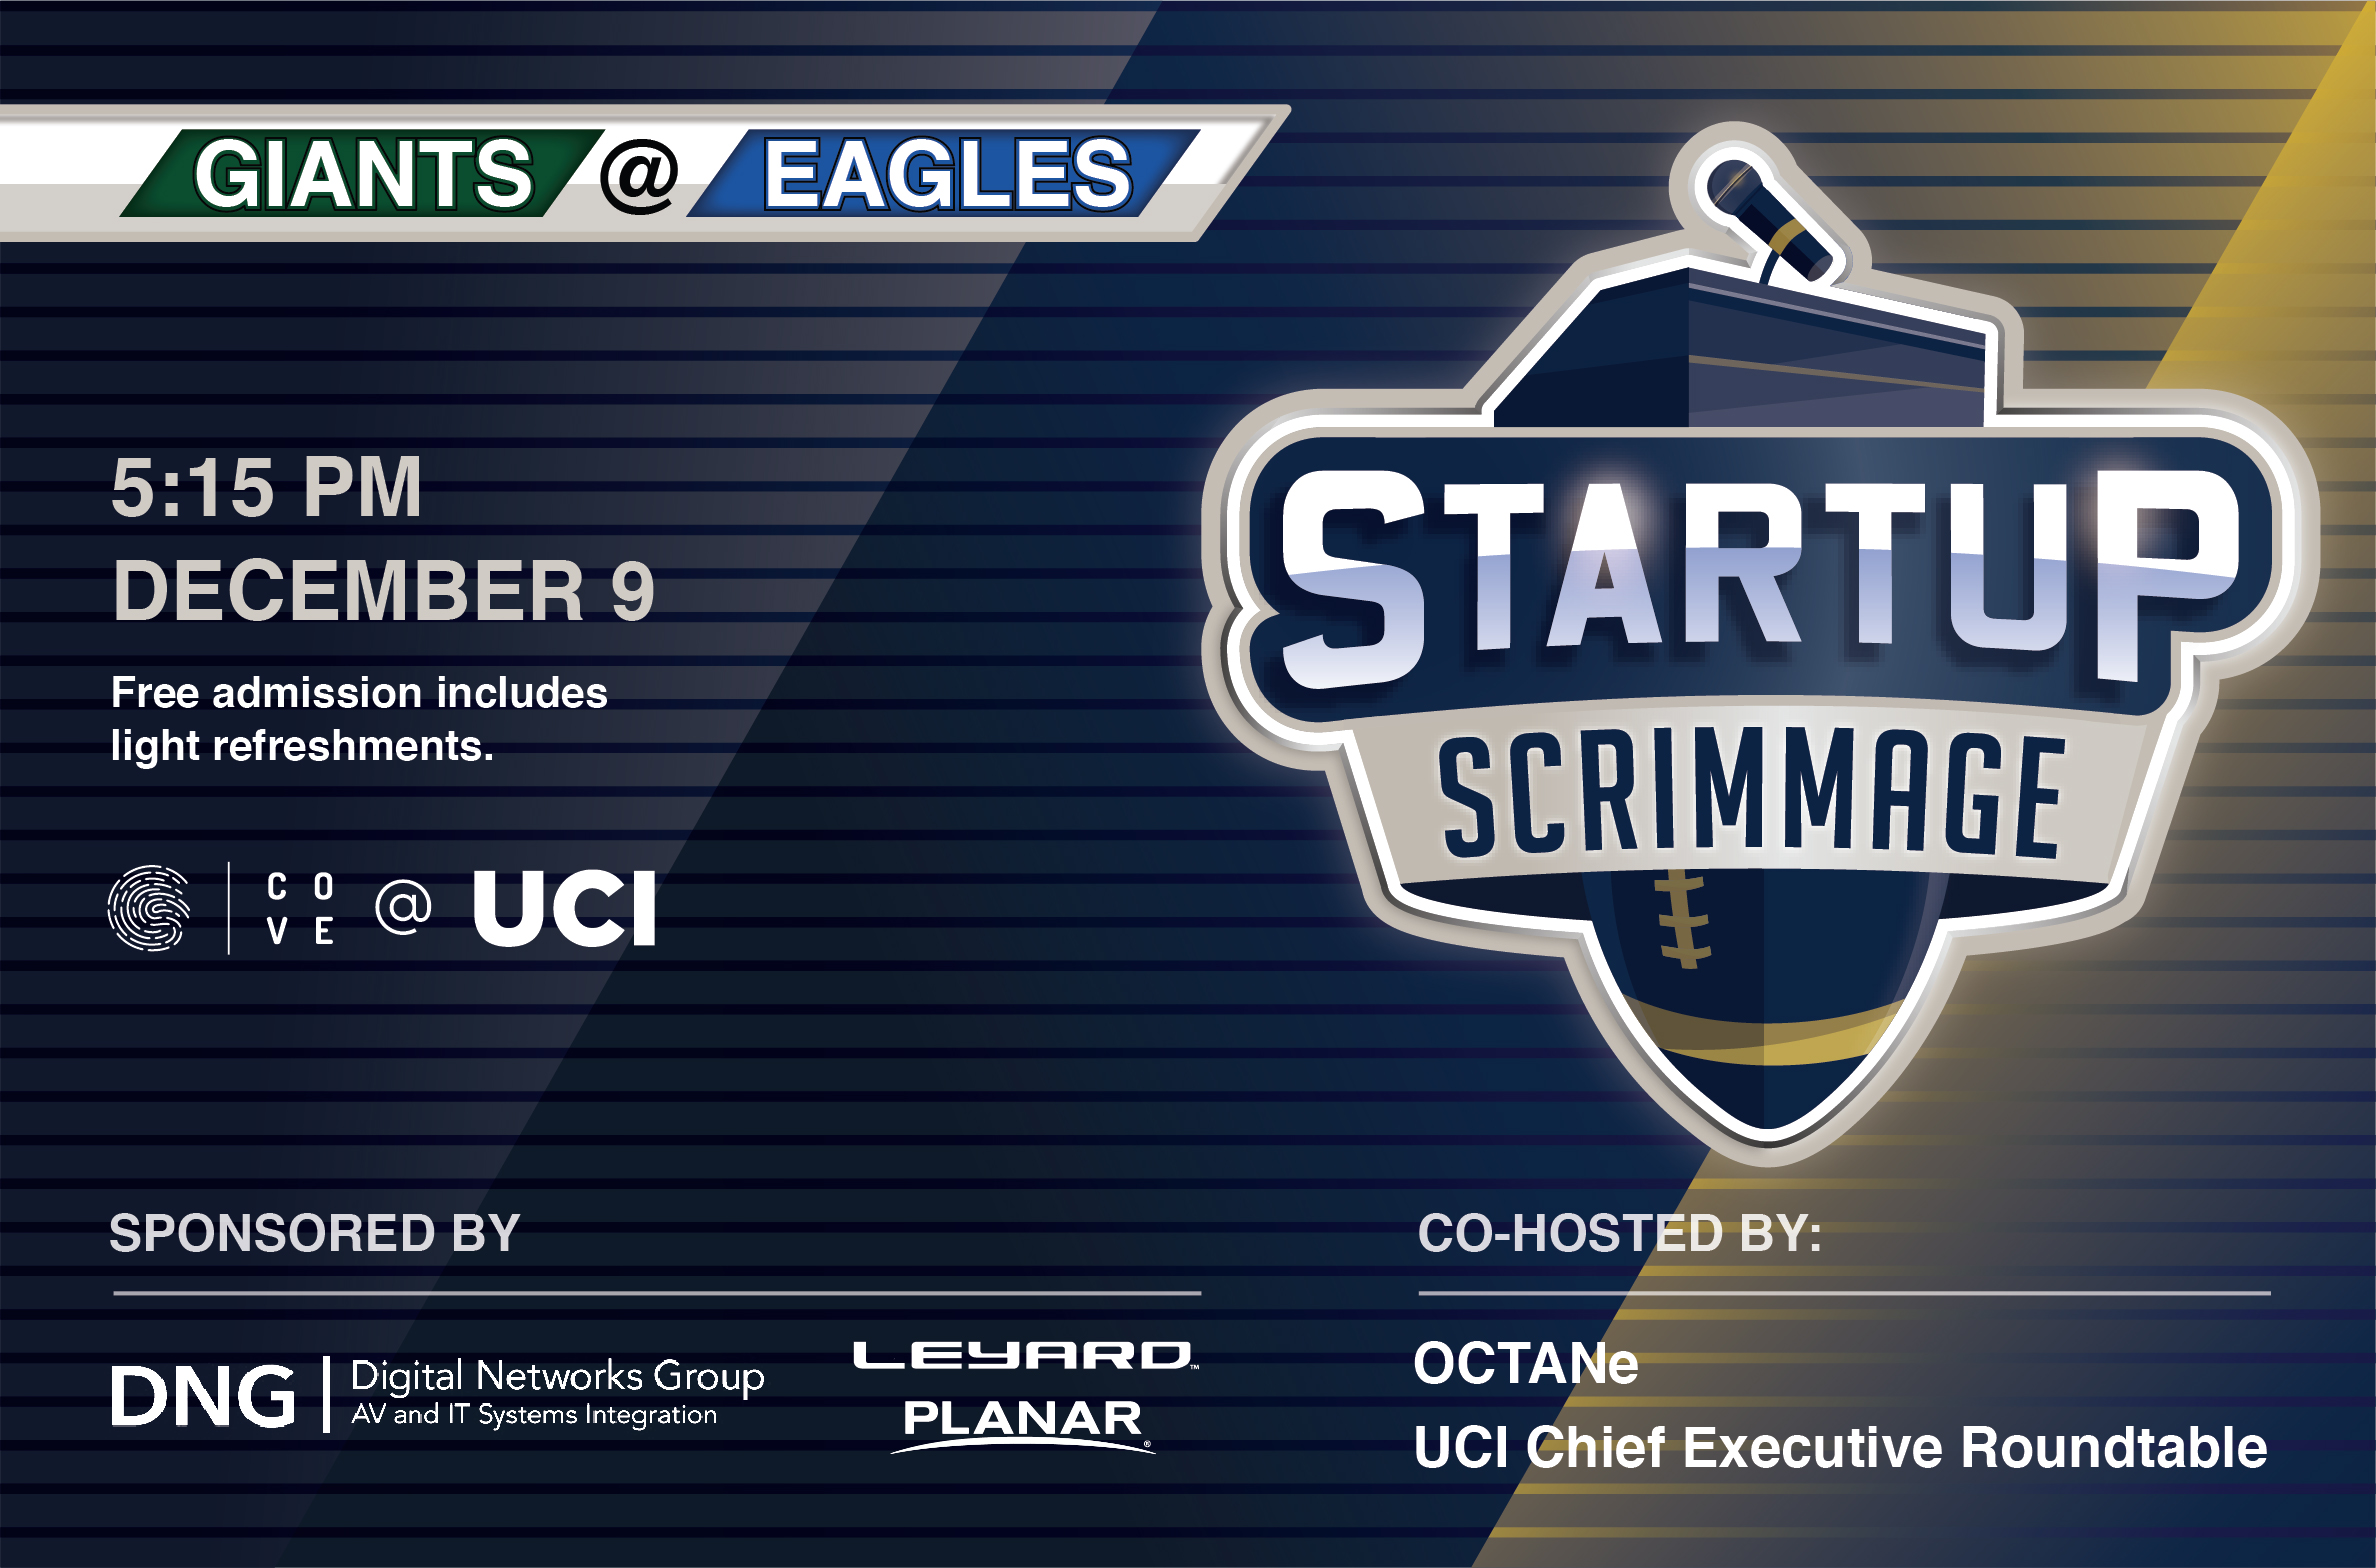 Startup Scrimmage: Giants @ Eagles